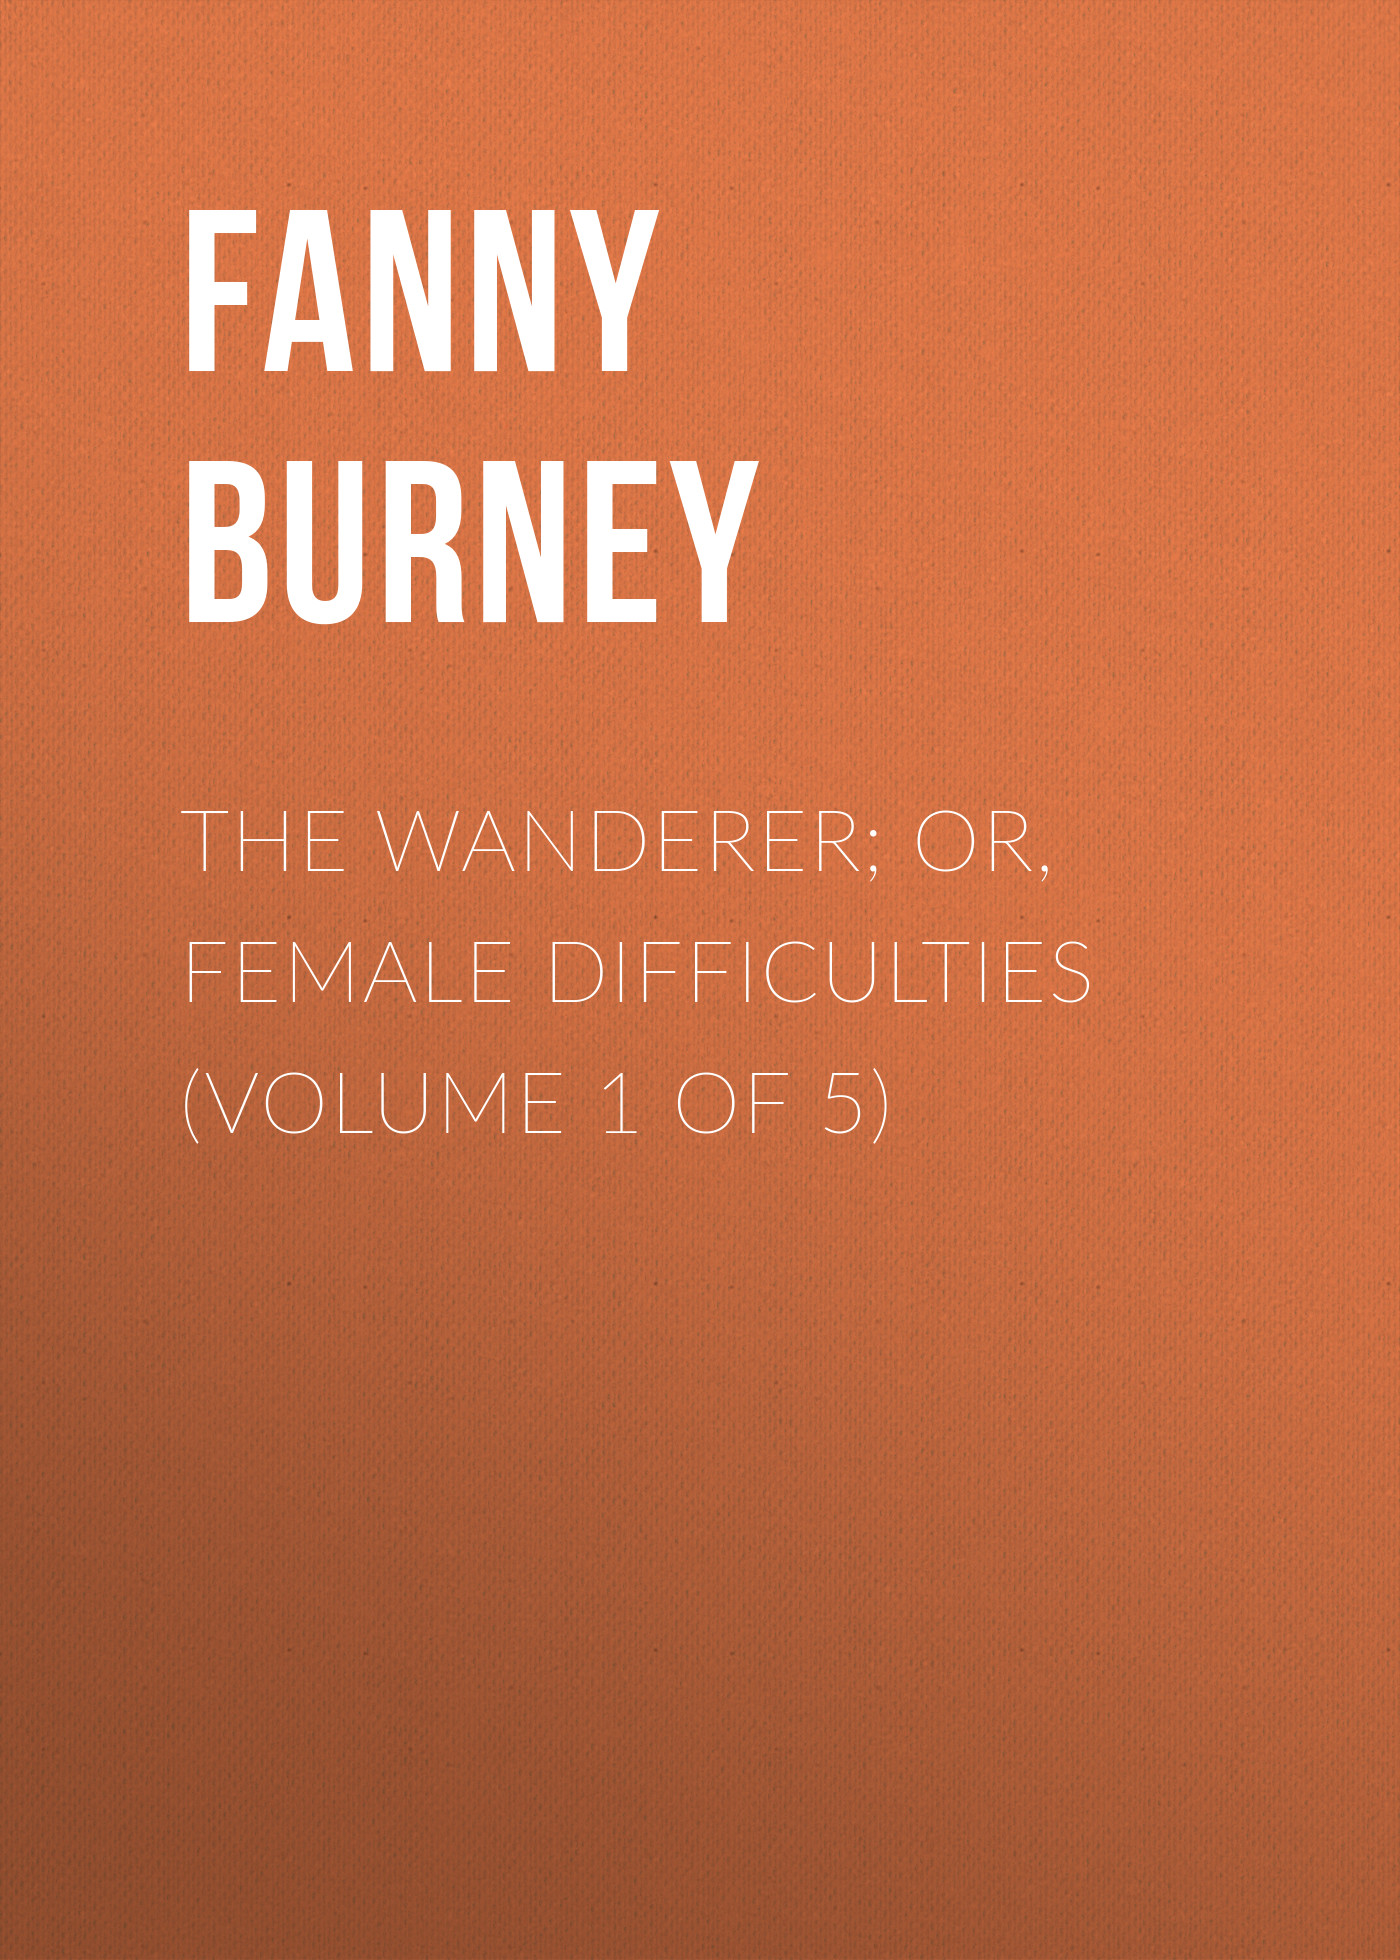 Burney Fanny The Wanderer; or, Female Difficulties (Volume 1 of 5) empowered volume 5